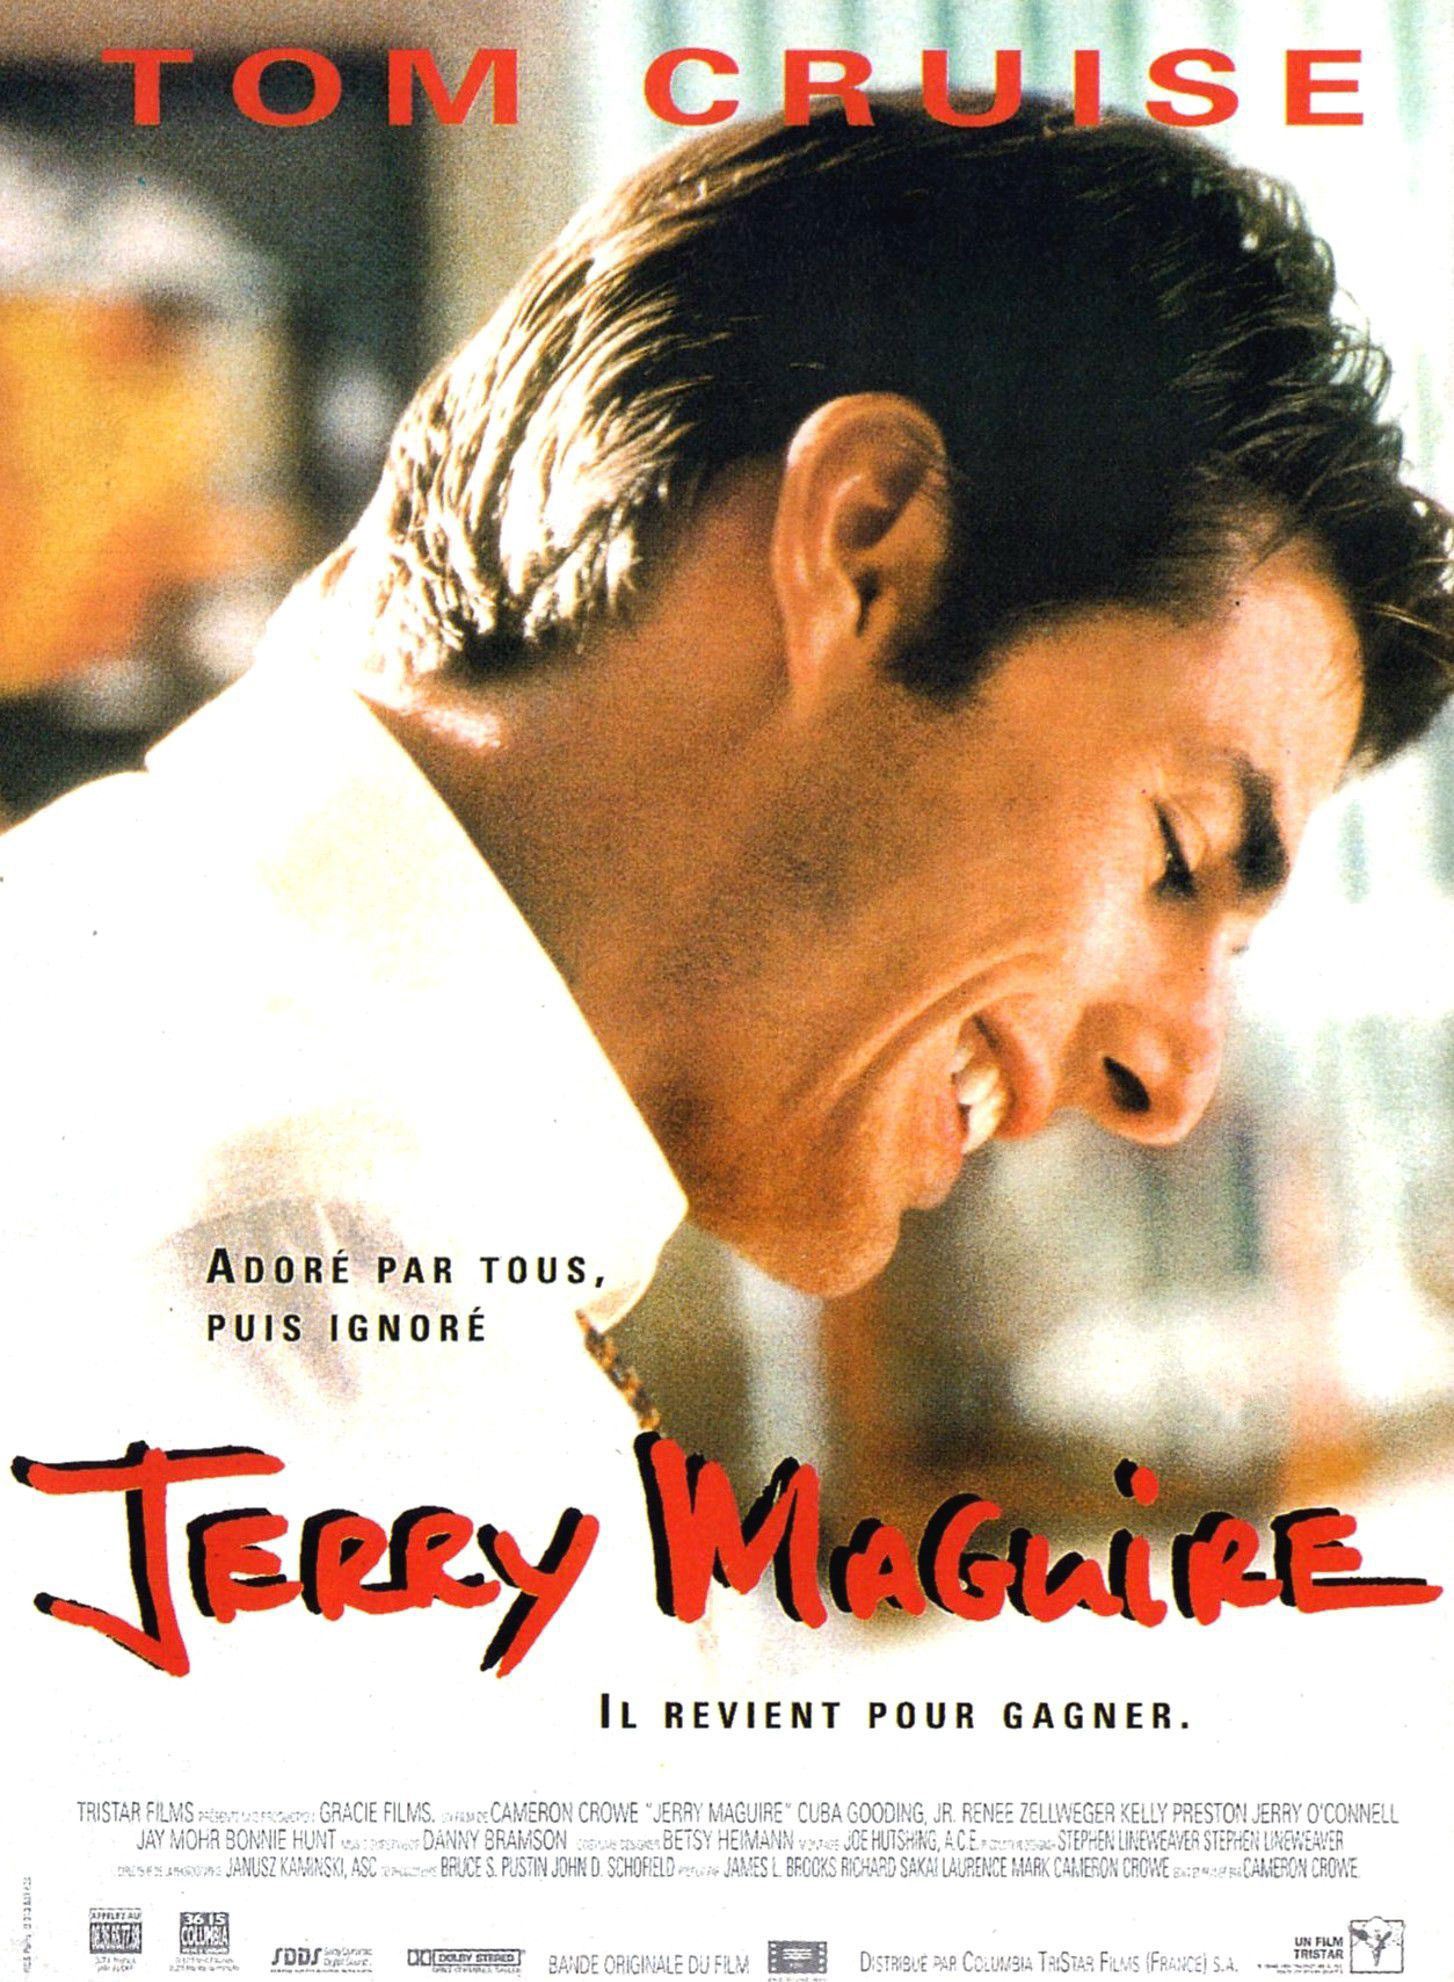 Jerry Maguire movie poster, in French!